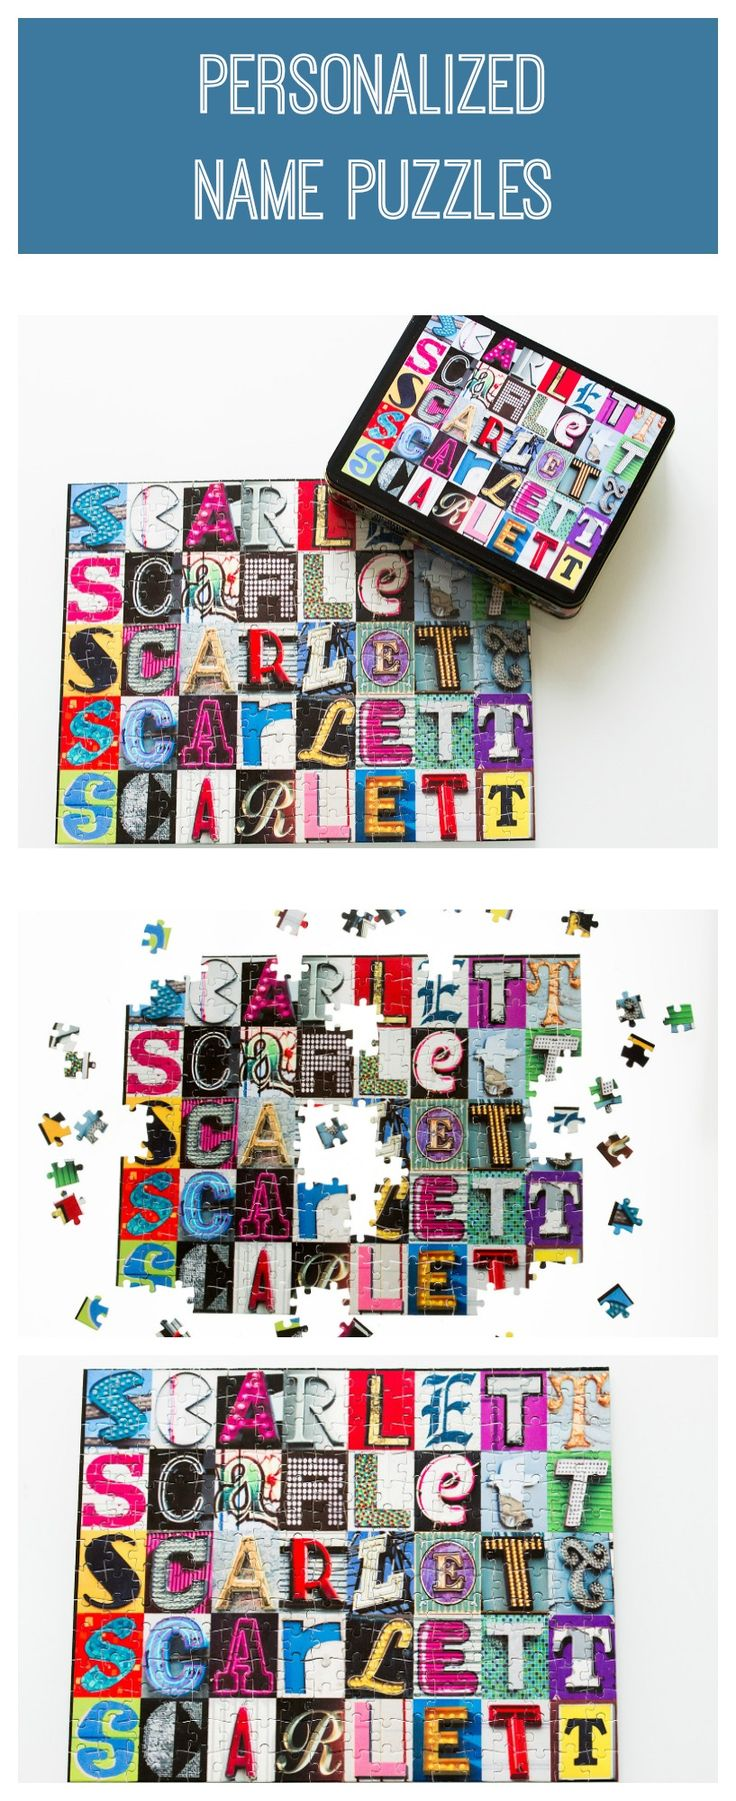 Personalized name jigsaw puzzles with ANY NAME in photos